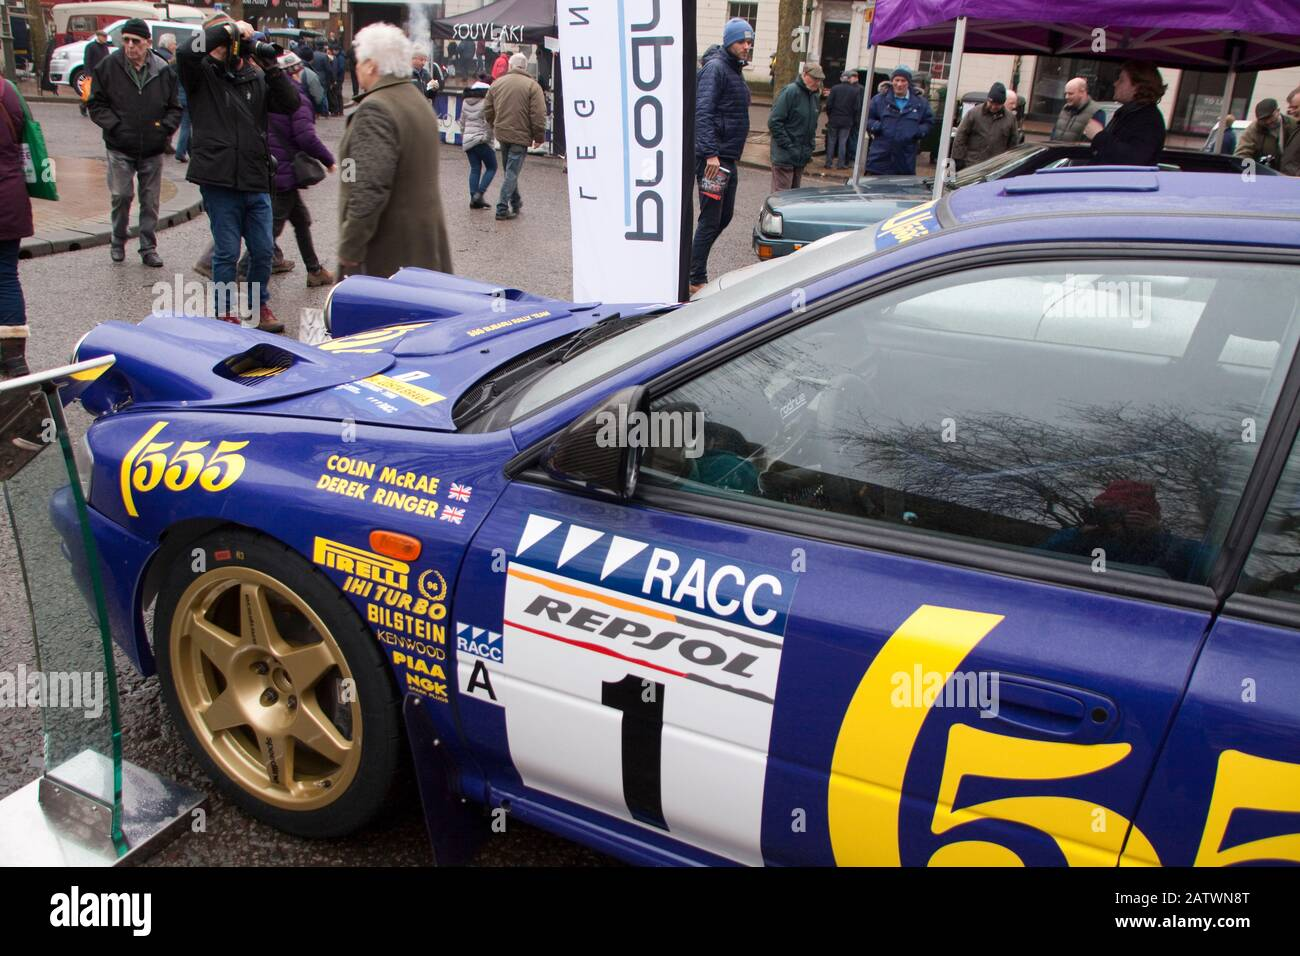 subaru 555 rally high resolution stock photography and images alamy https www alamy com monte carlo rally banbury 2020 static display subaru image342314248 html